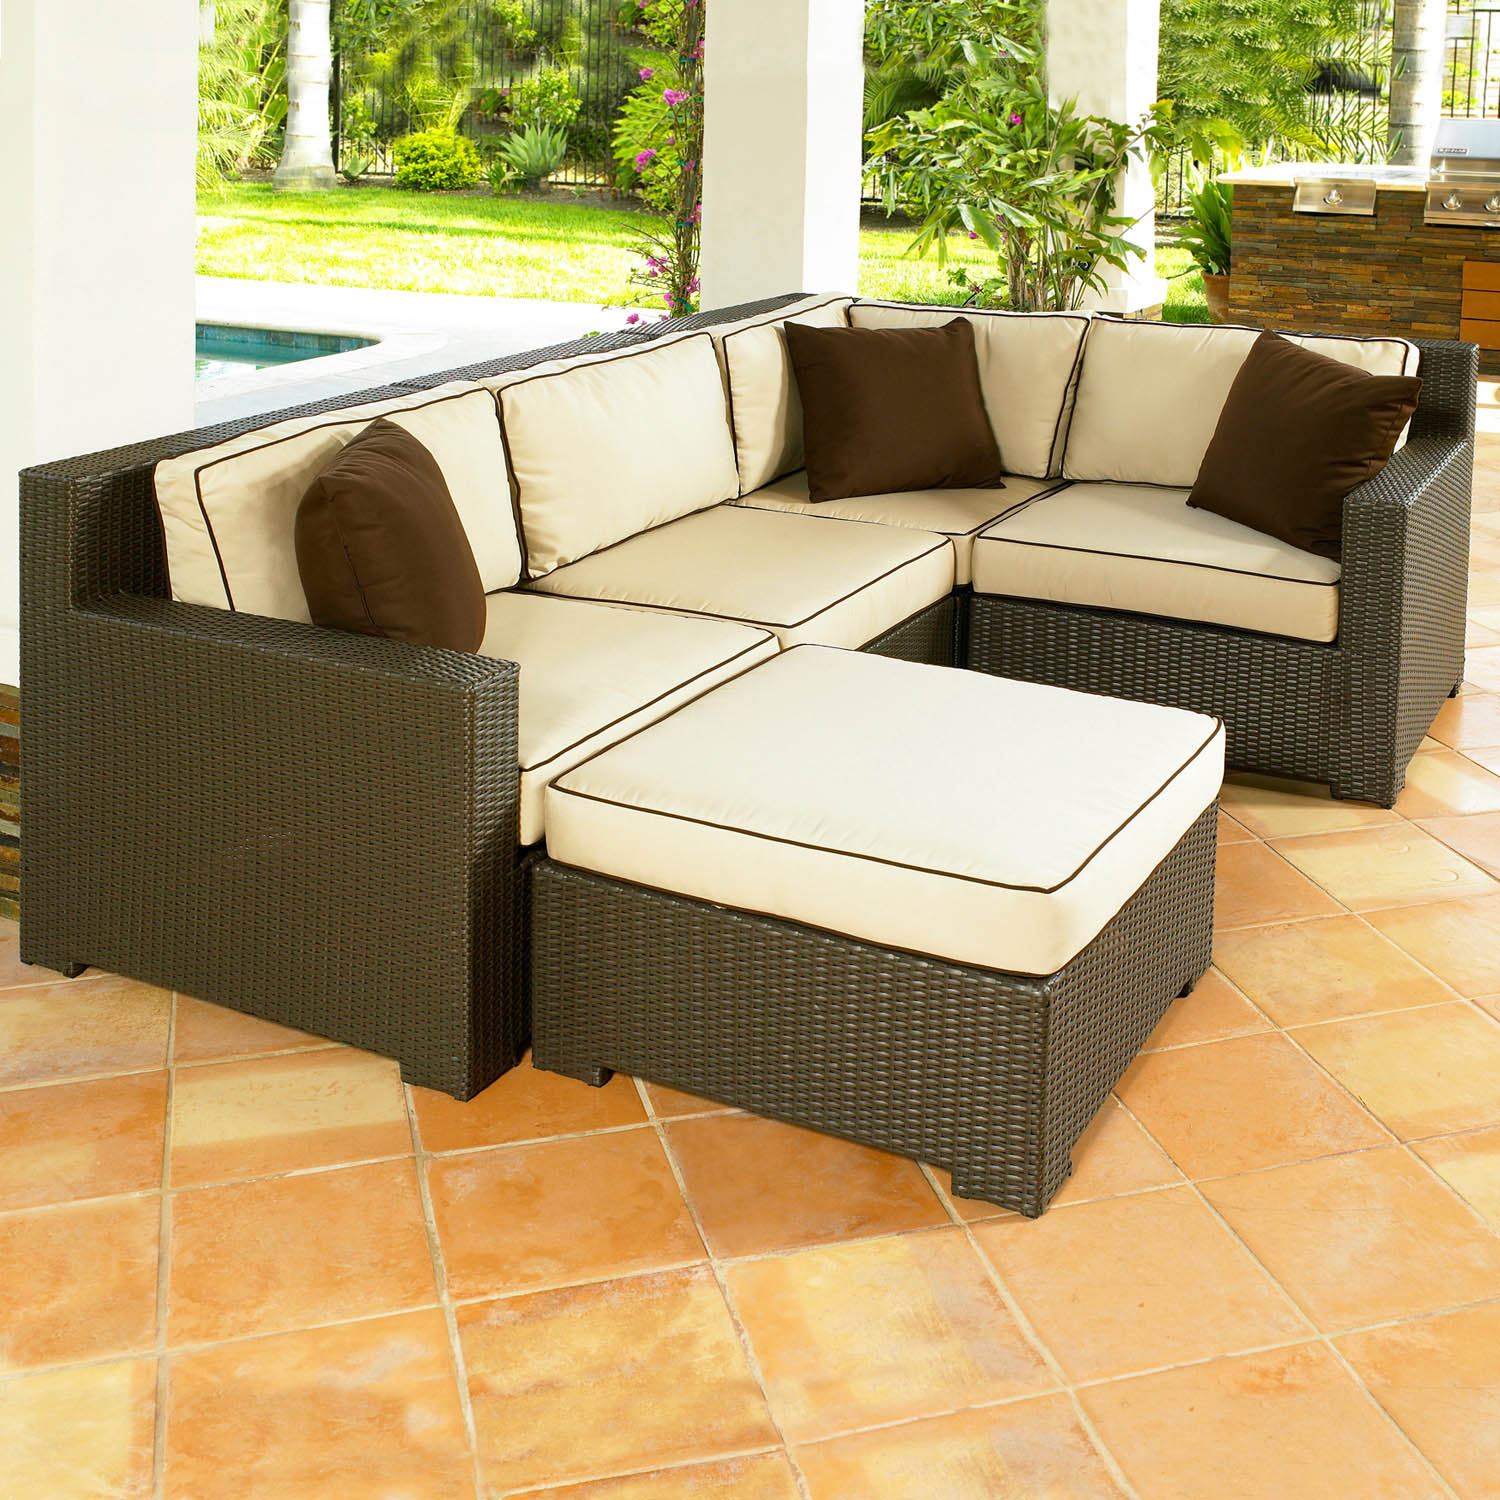 NorthCape International Outdoor Furniture Nevada Outdoor Living